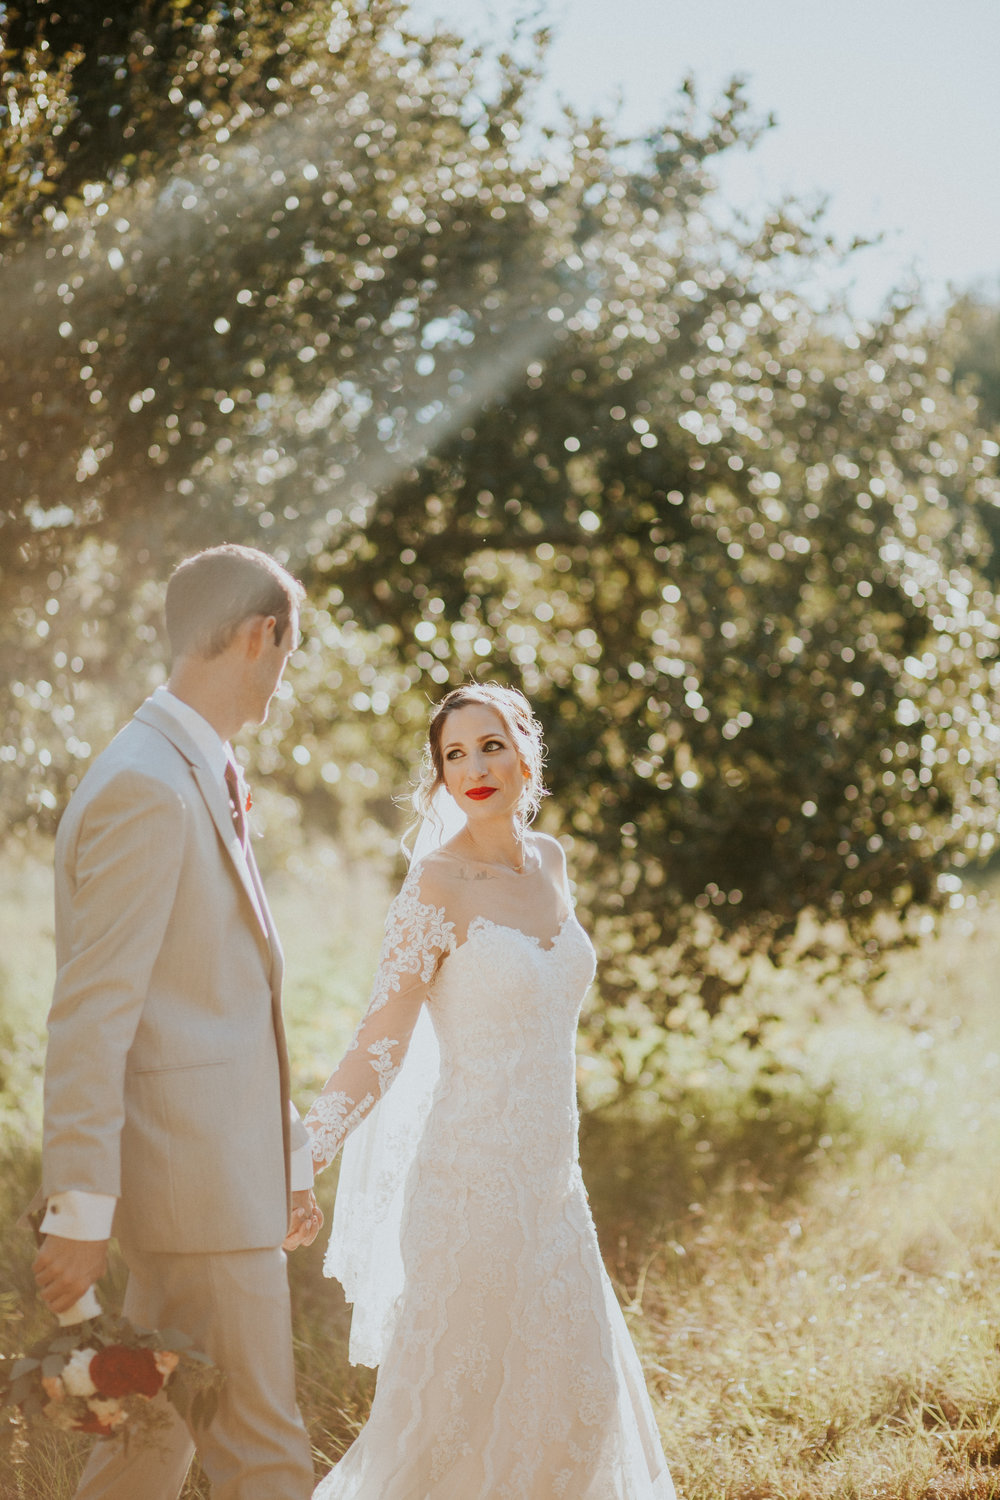 Hill_Wedding_Bridals-36.jpg